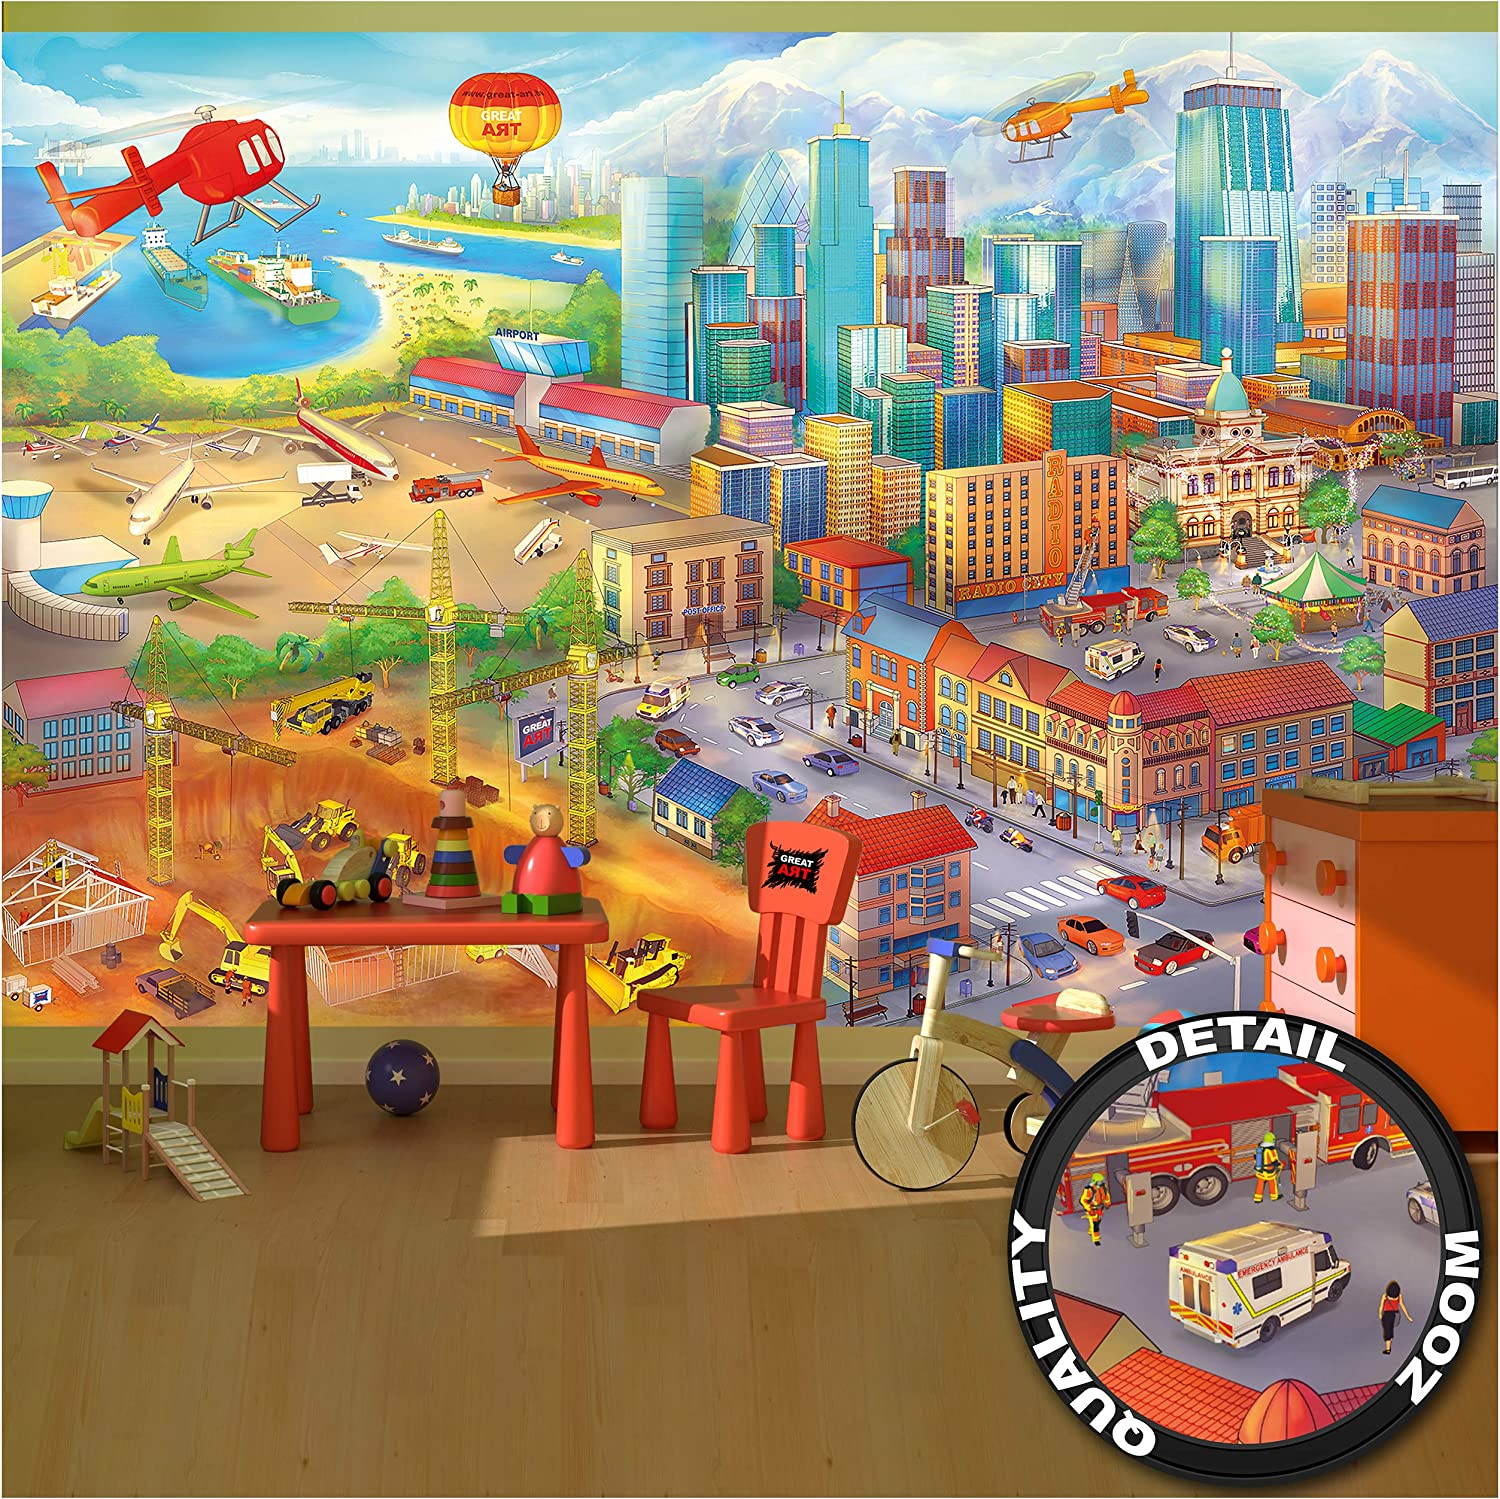 Large Photo Wallpaper – Comic Style – Wall Picture Decoration Hidden Objects City Building-Site Helicopter Airplane Digger Airport Image Decor Wall Mural (132.3x93.7in - 336x238cm)